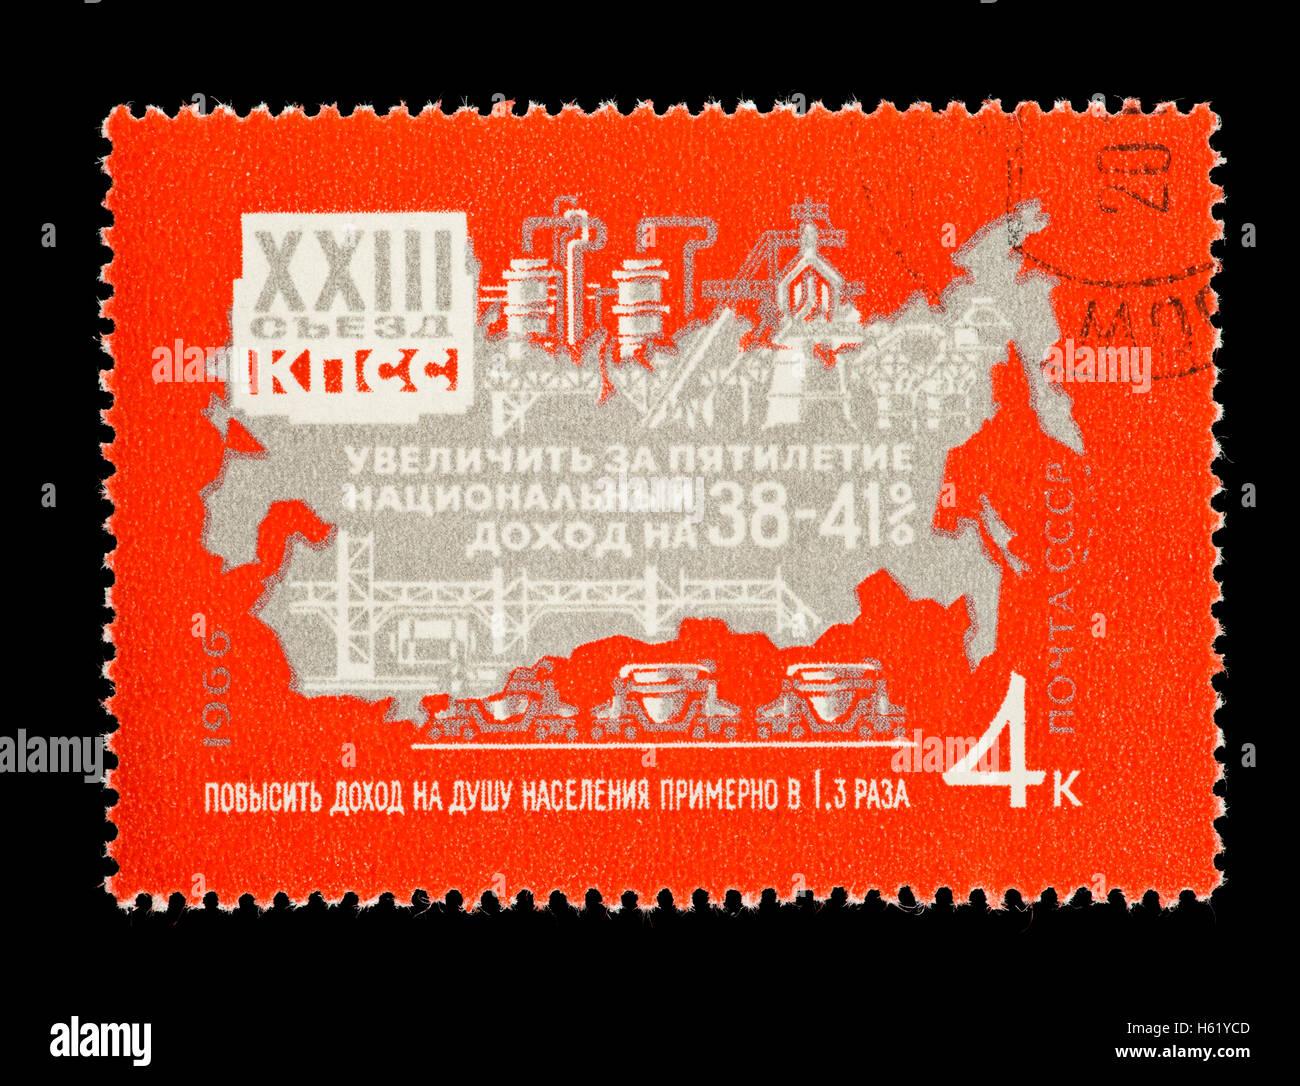 Postage Stamp From The Soviet Union Depicting A Country Map And